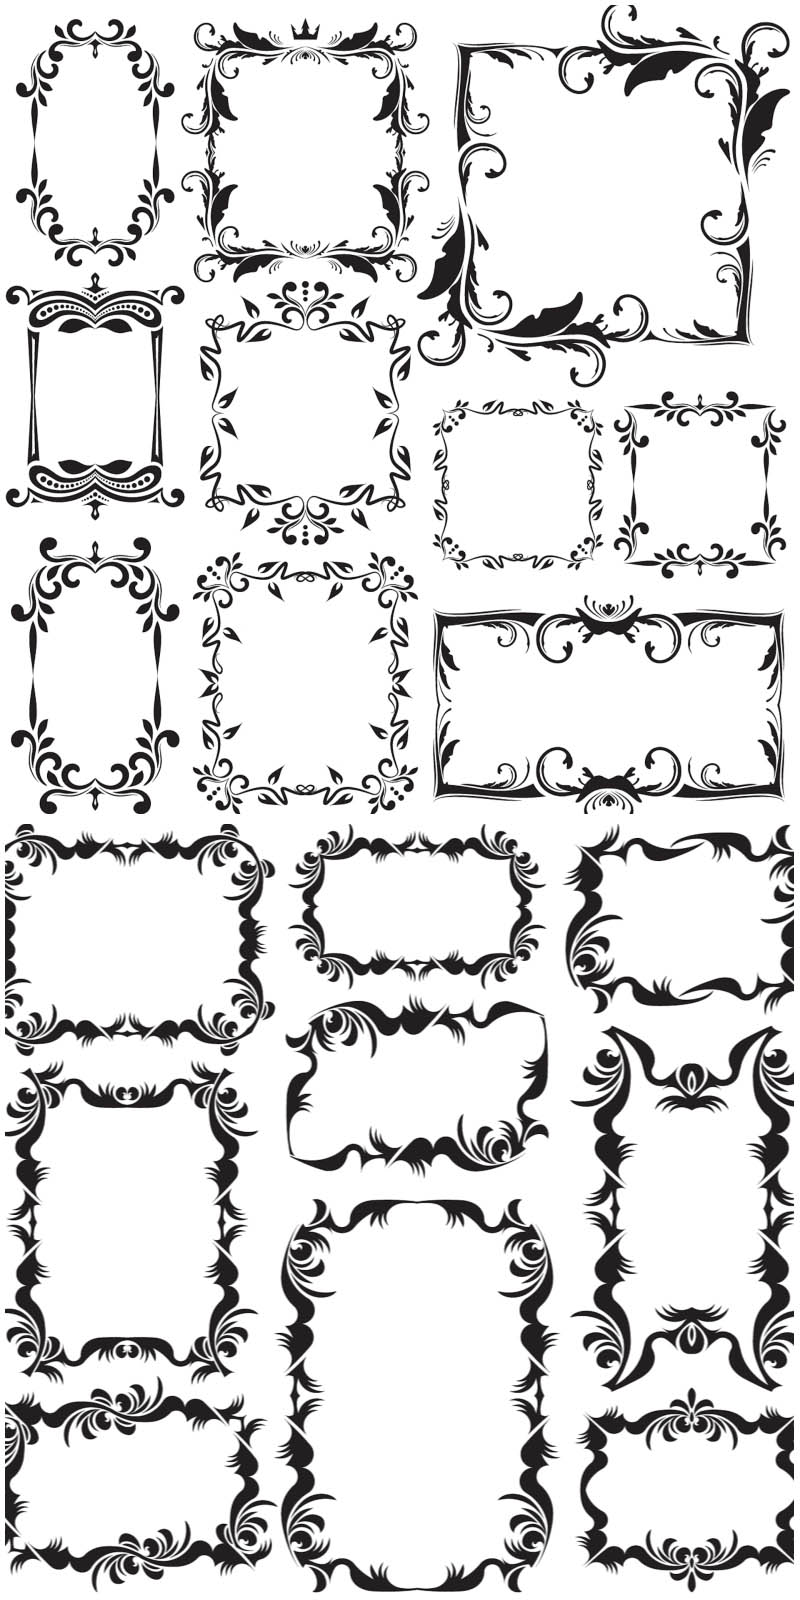 14 Vintage Vector Decorative Frames Images